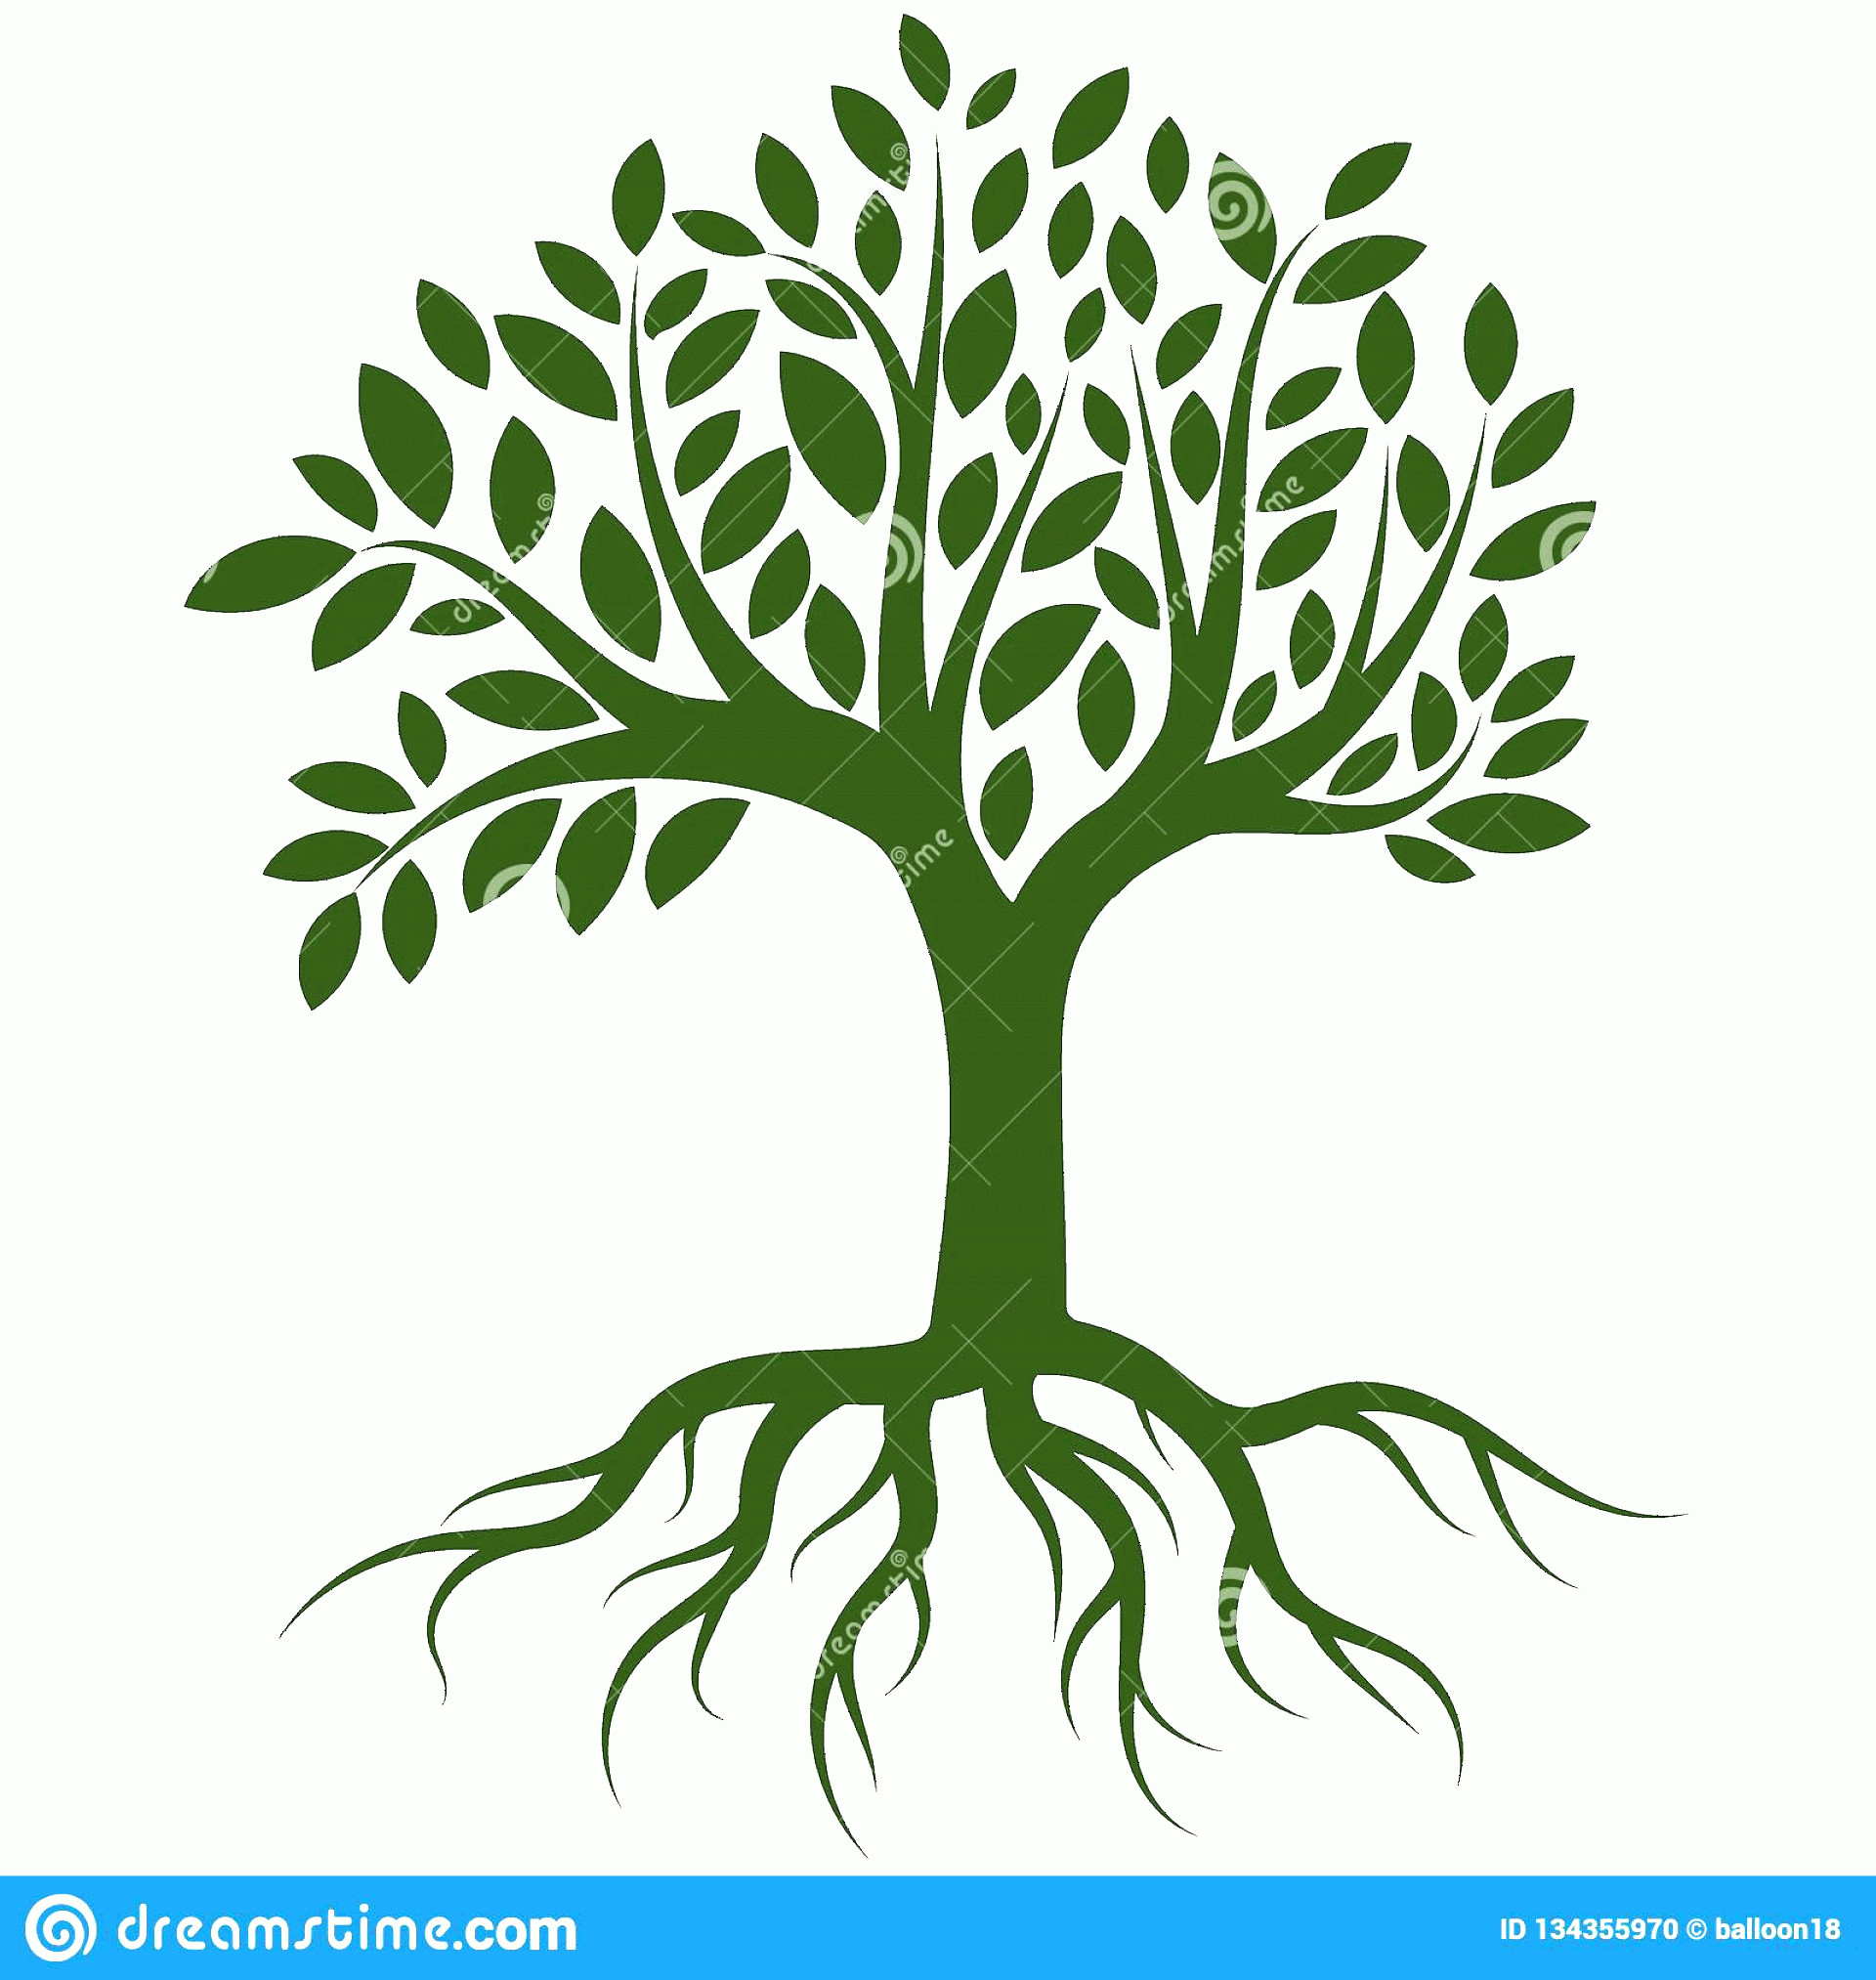 Vector Tree With Roots Drawing: Vector Illustration Tree Roots Isolated White Background Editable Clip Art Drawing Tree Roots Logo Vector Image